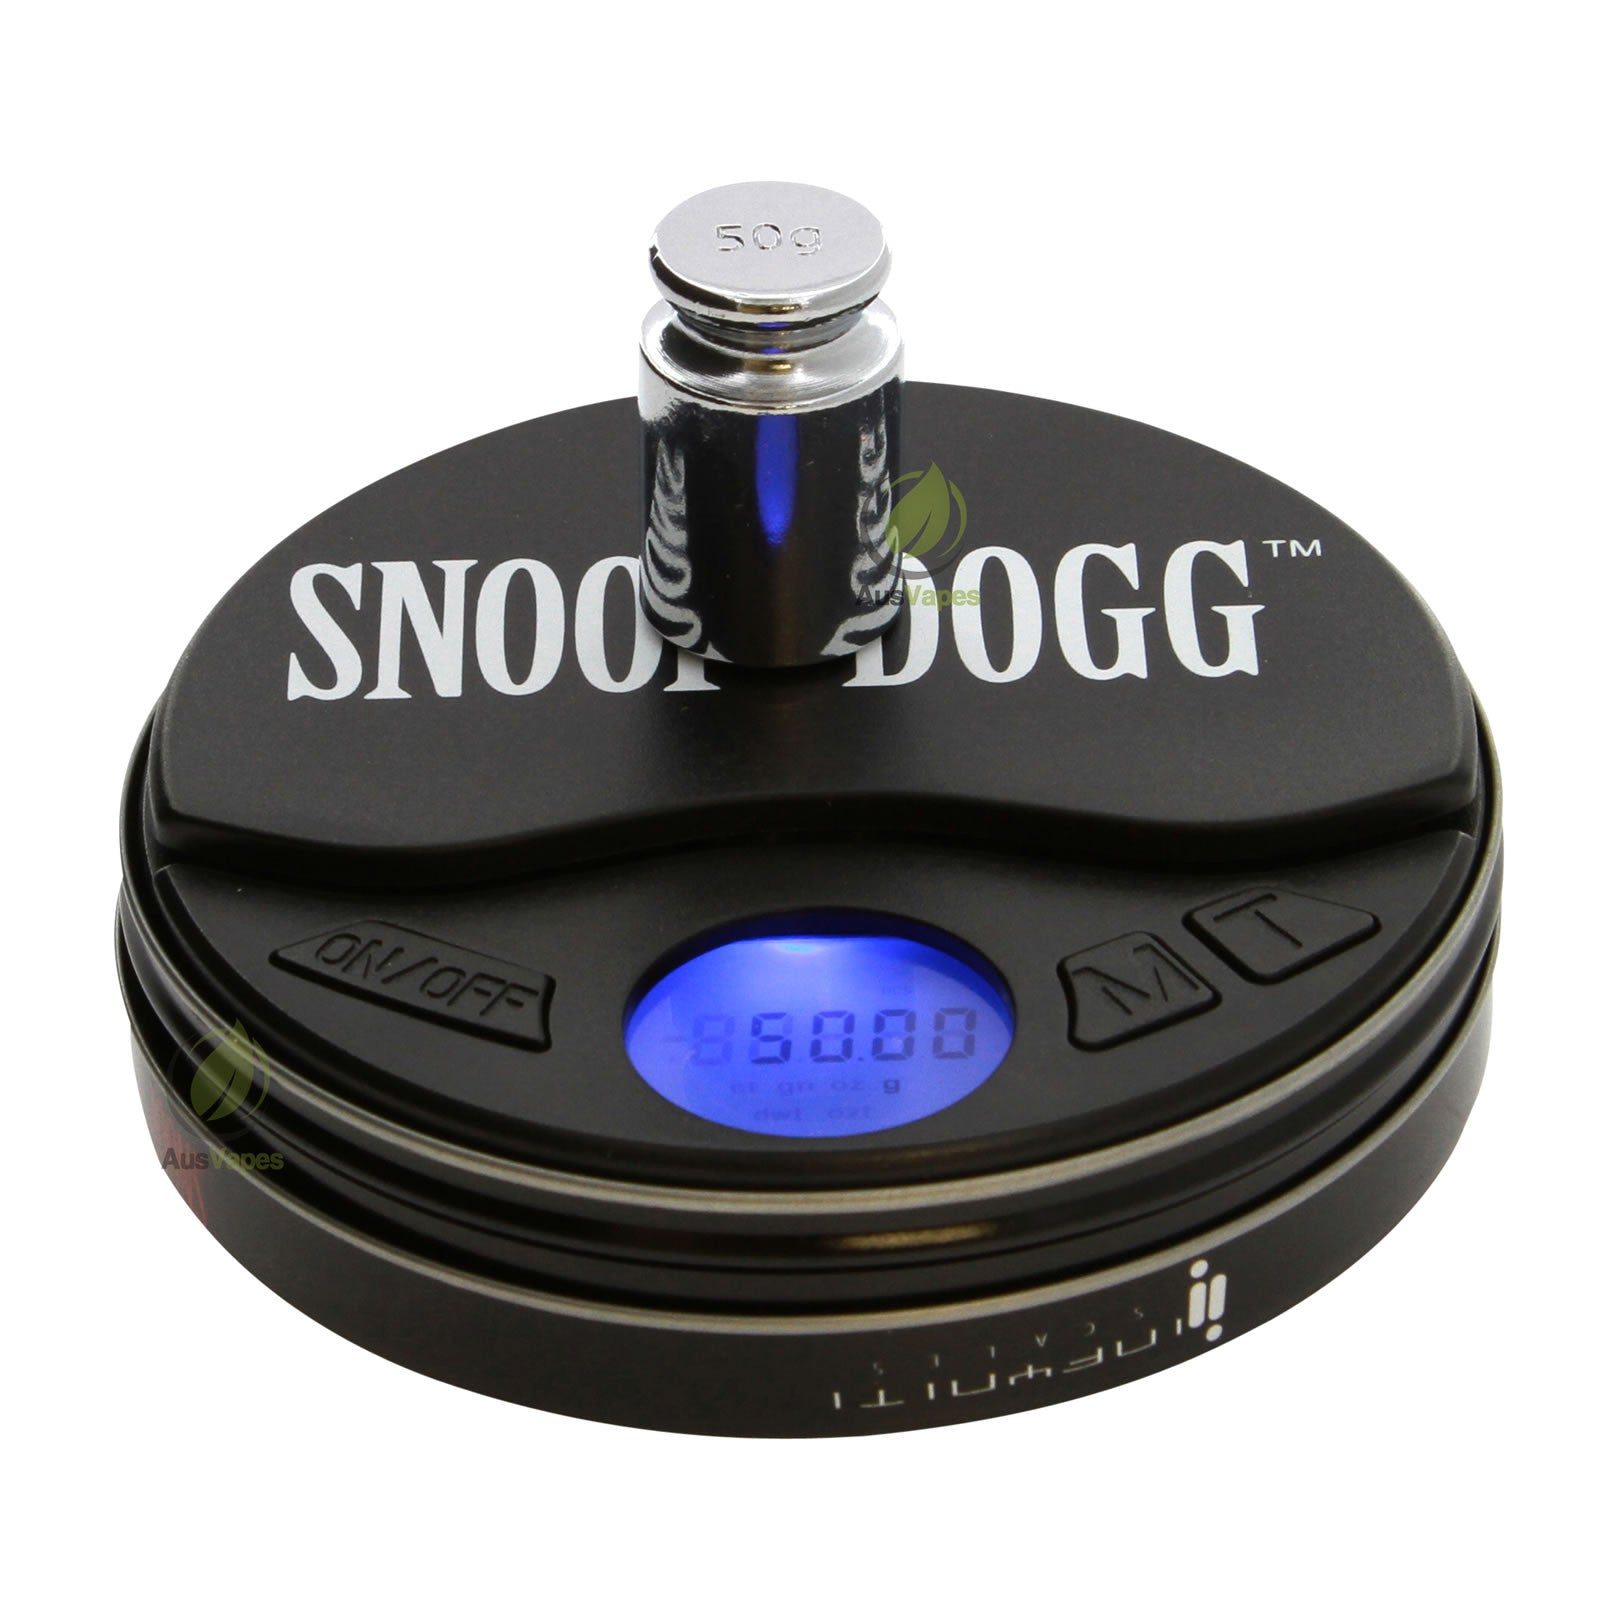 DISCONTINUED Infyniti Snoop Dogg Eclipse Digital Scale 100g x 0.01g